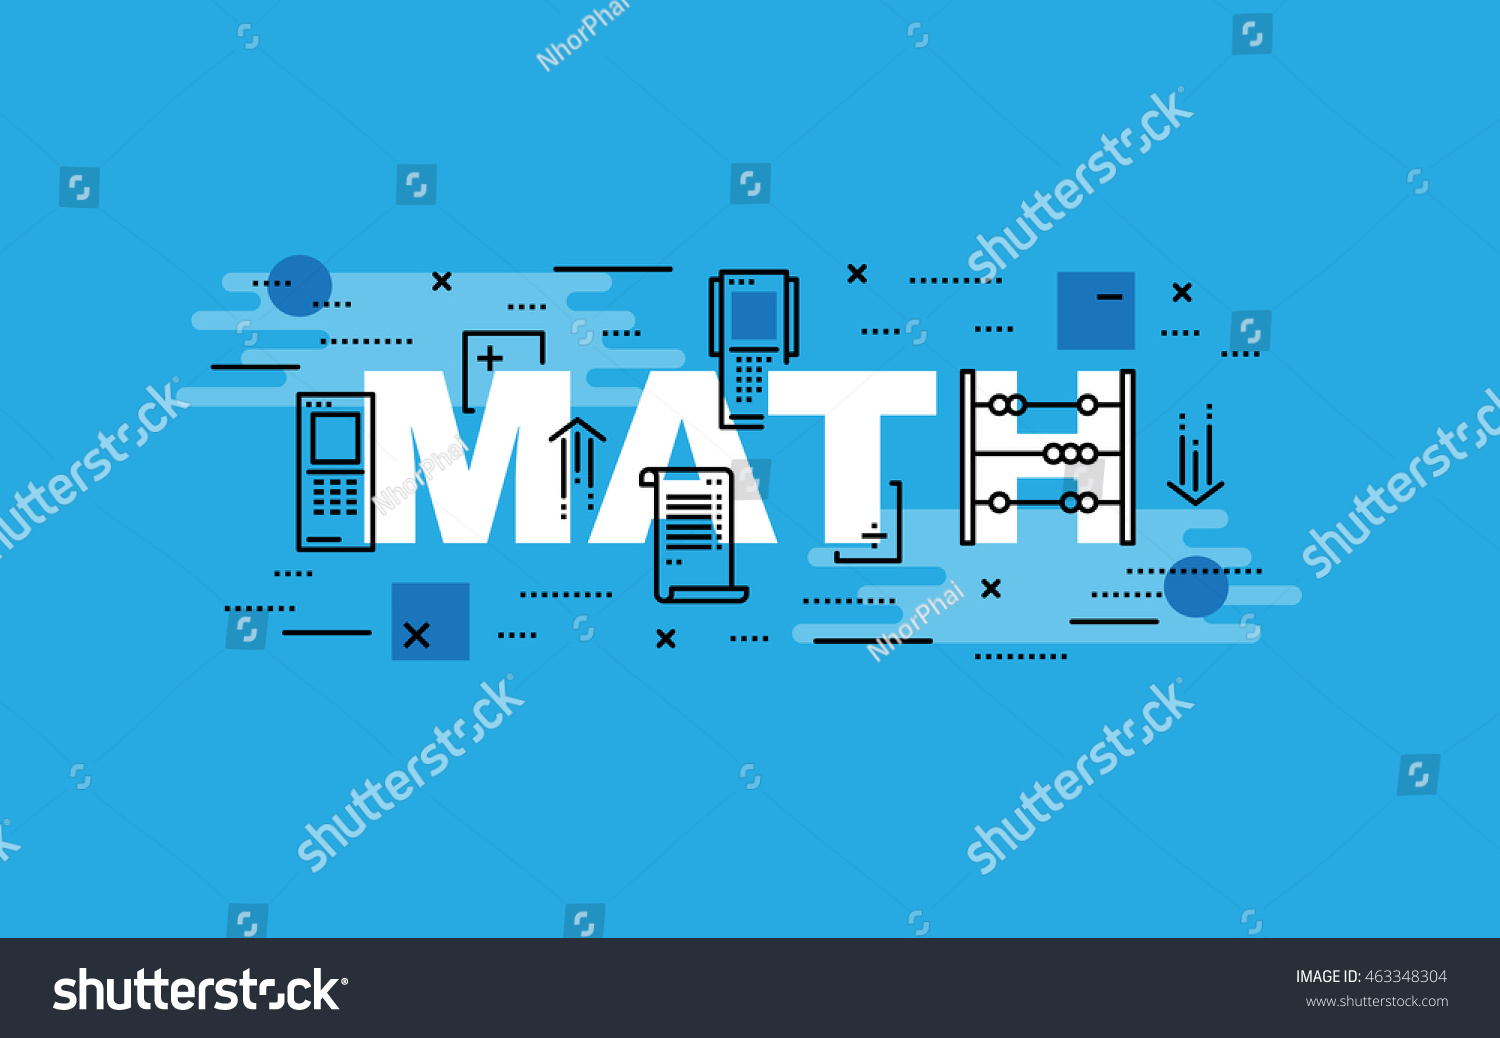 Lettering Flat Line Design Concepts Math Thin Stock Vector (Royalty ...